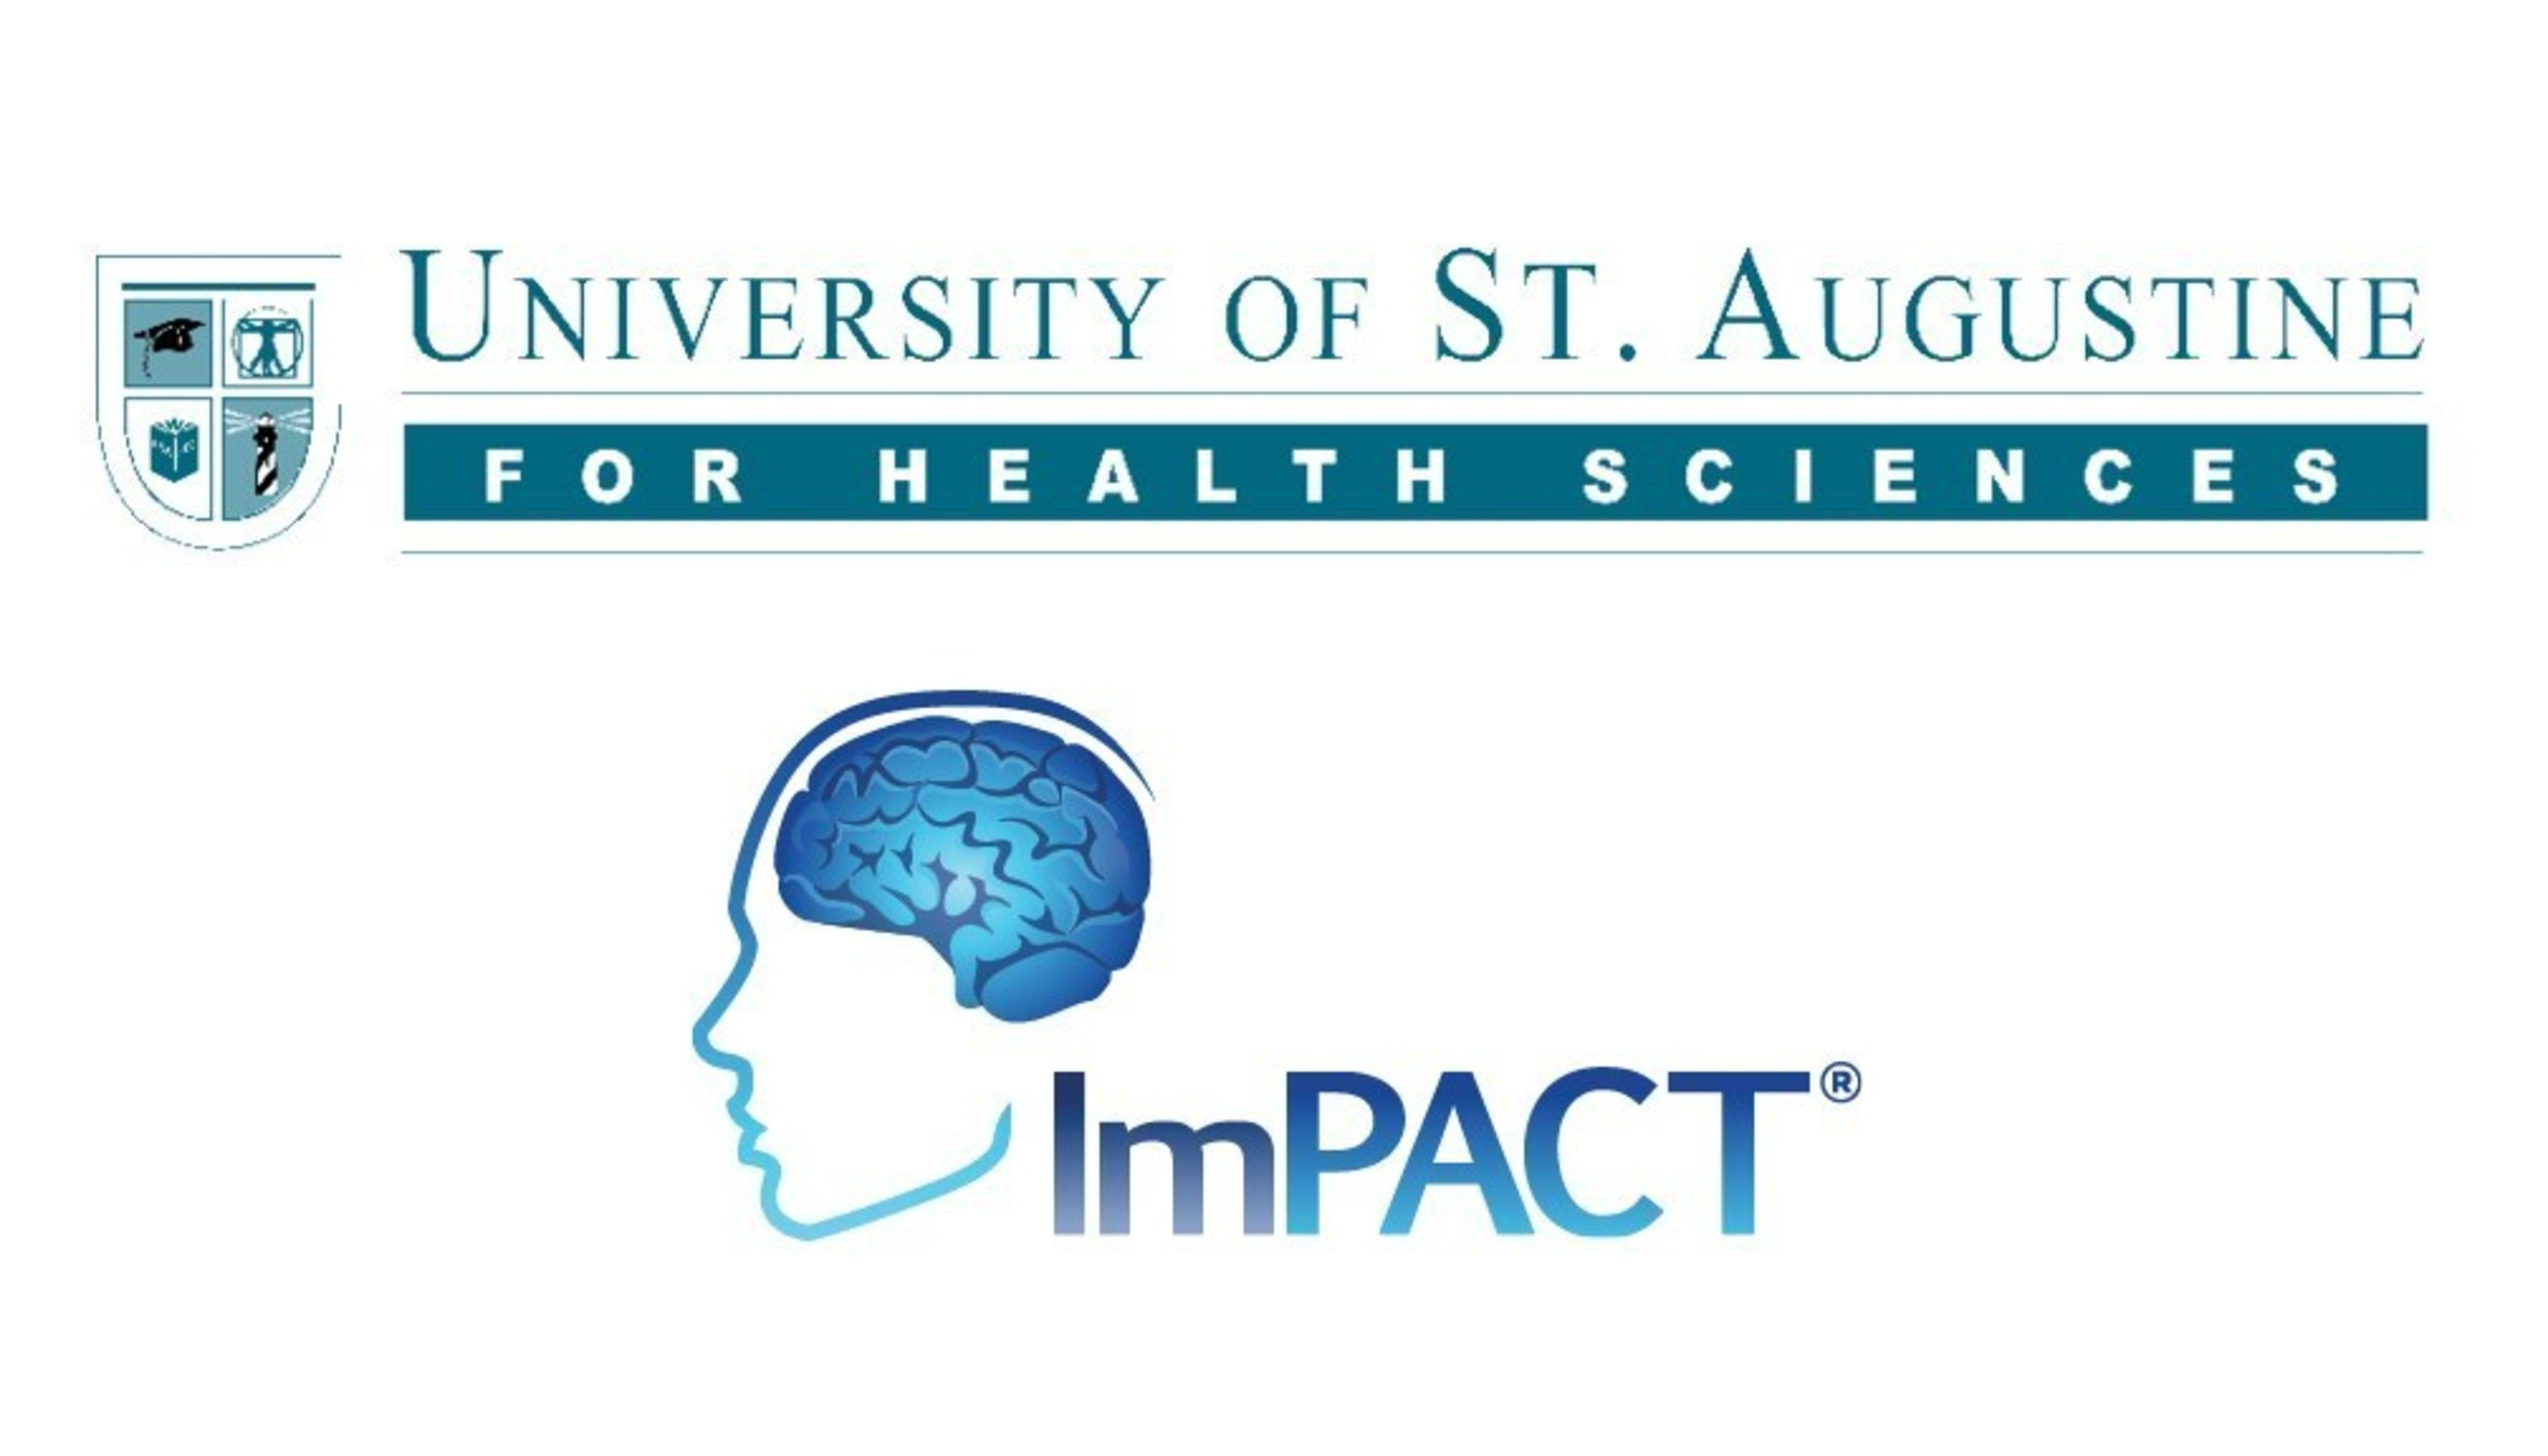 University Of St Augustine For Health Sciences First To Offer